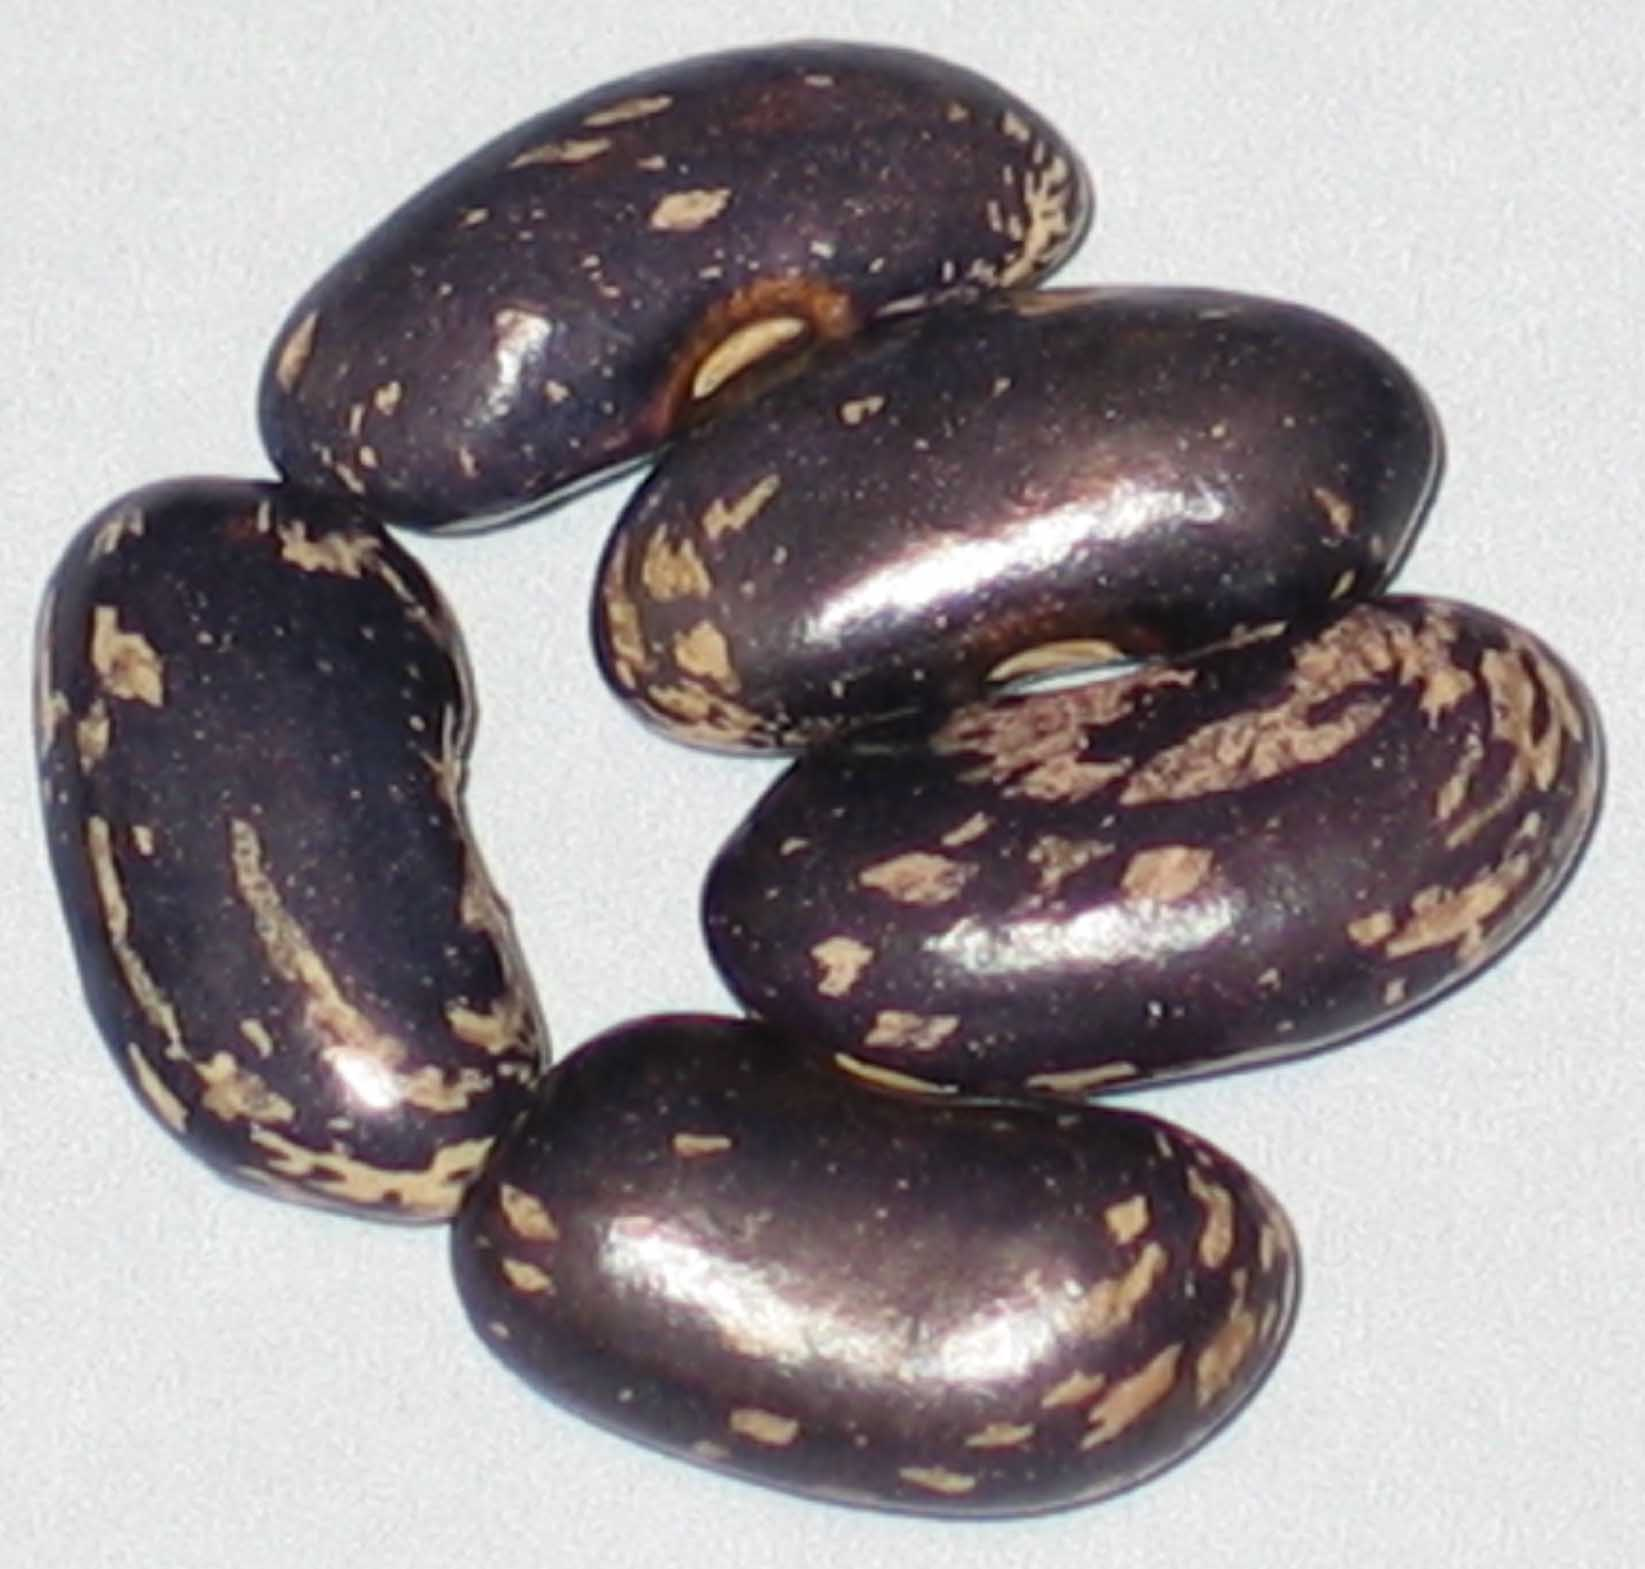 image of Koronis Purple Outcross beans